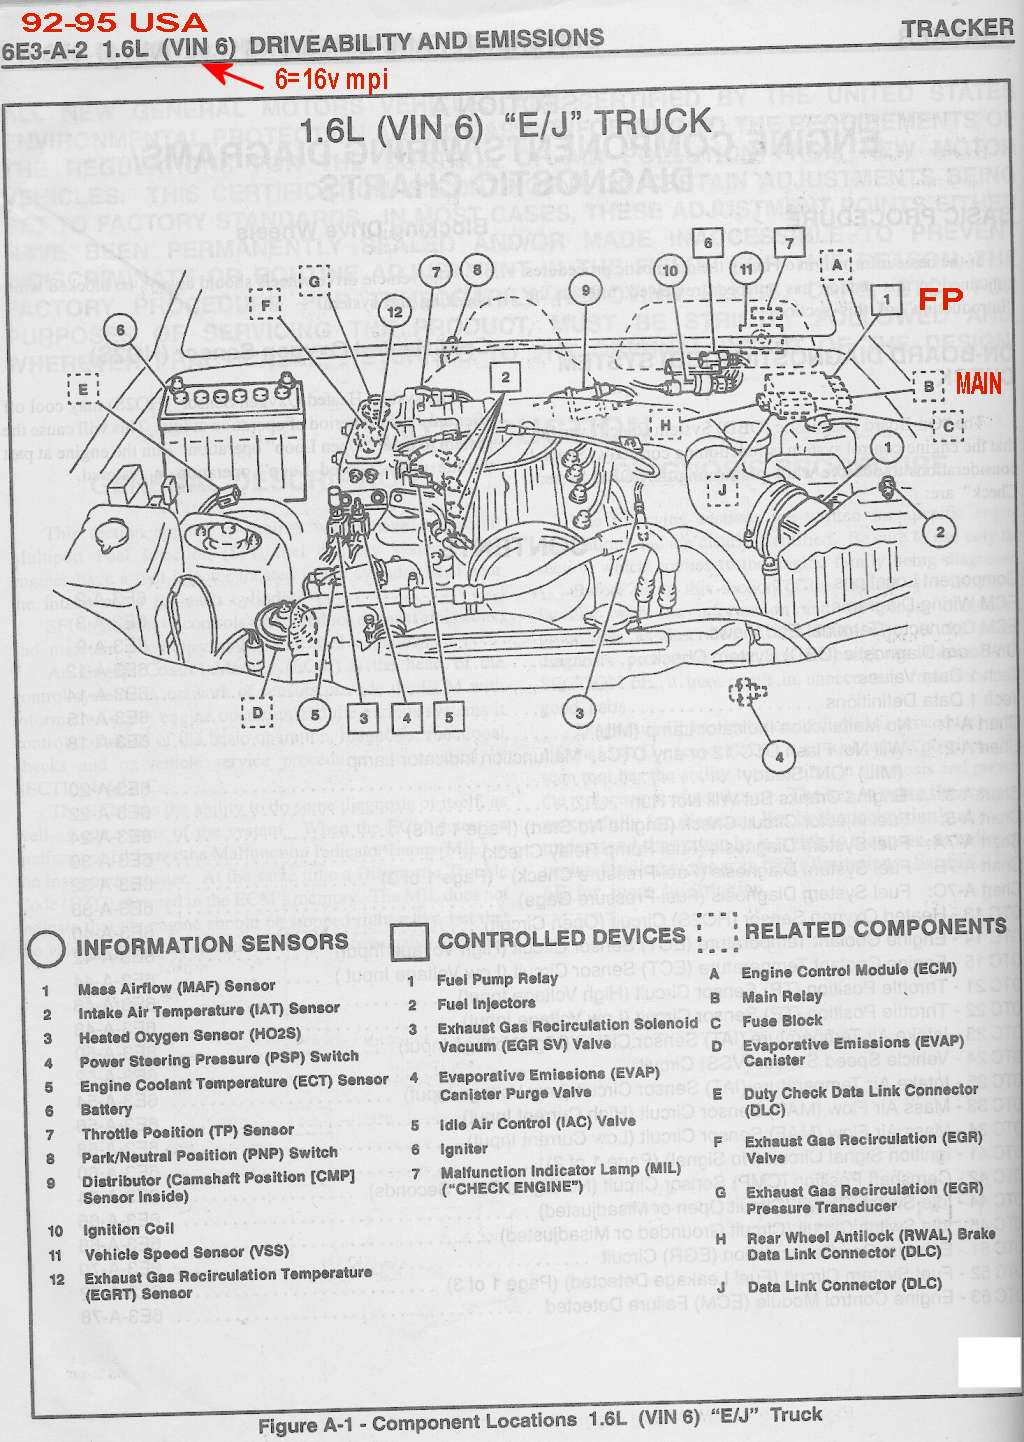 2002 chevy prizm exhaust diagram wiring schematic